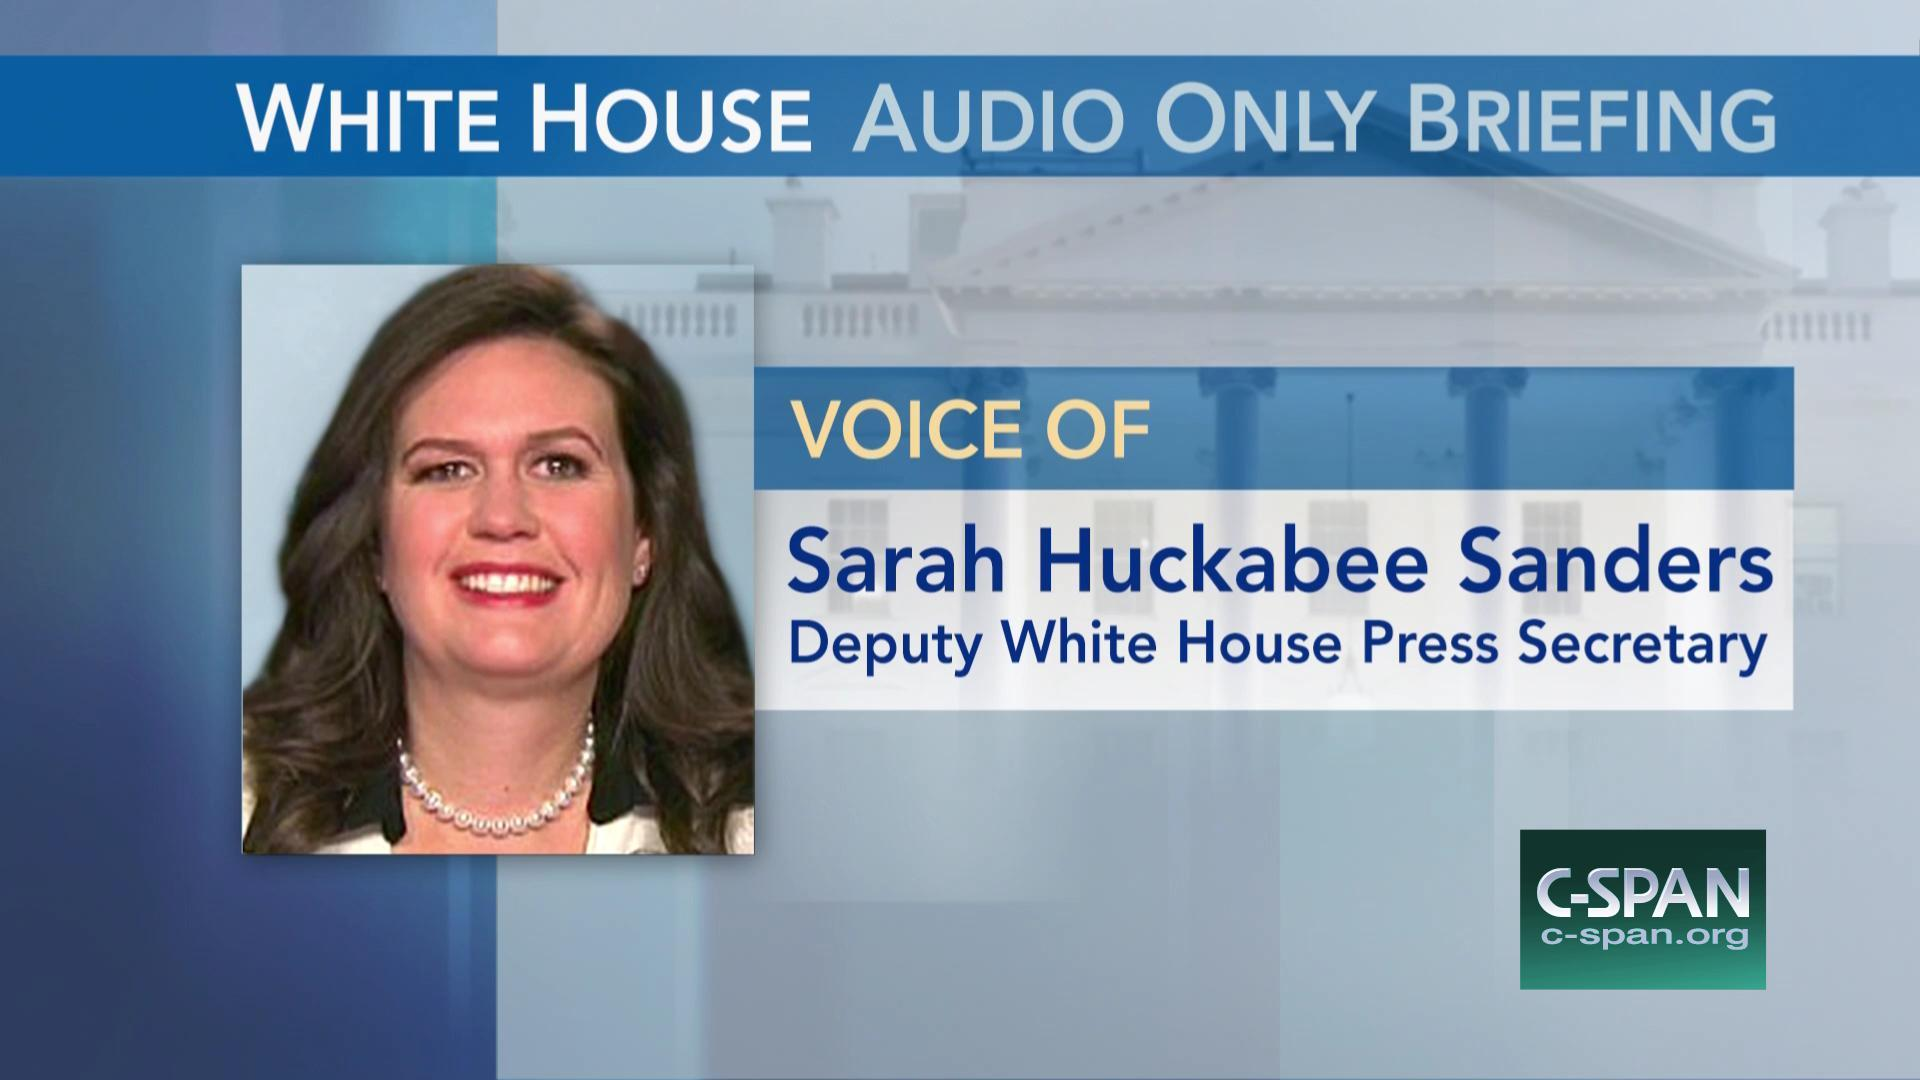 white house president confidence attorney general audio | c-span